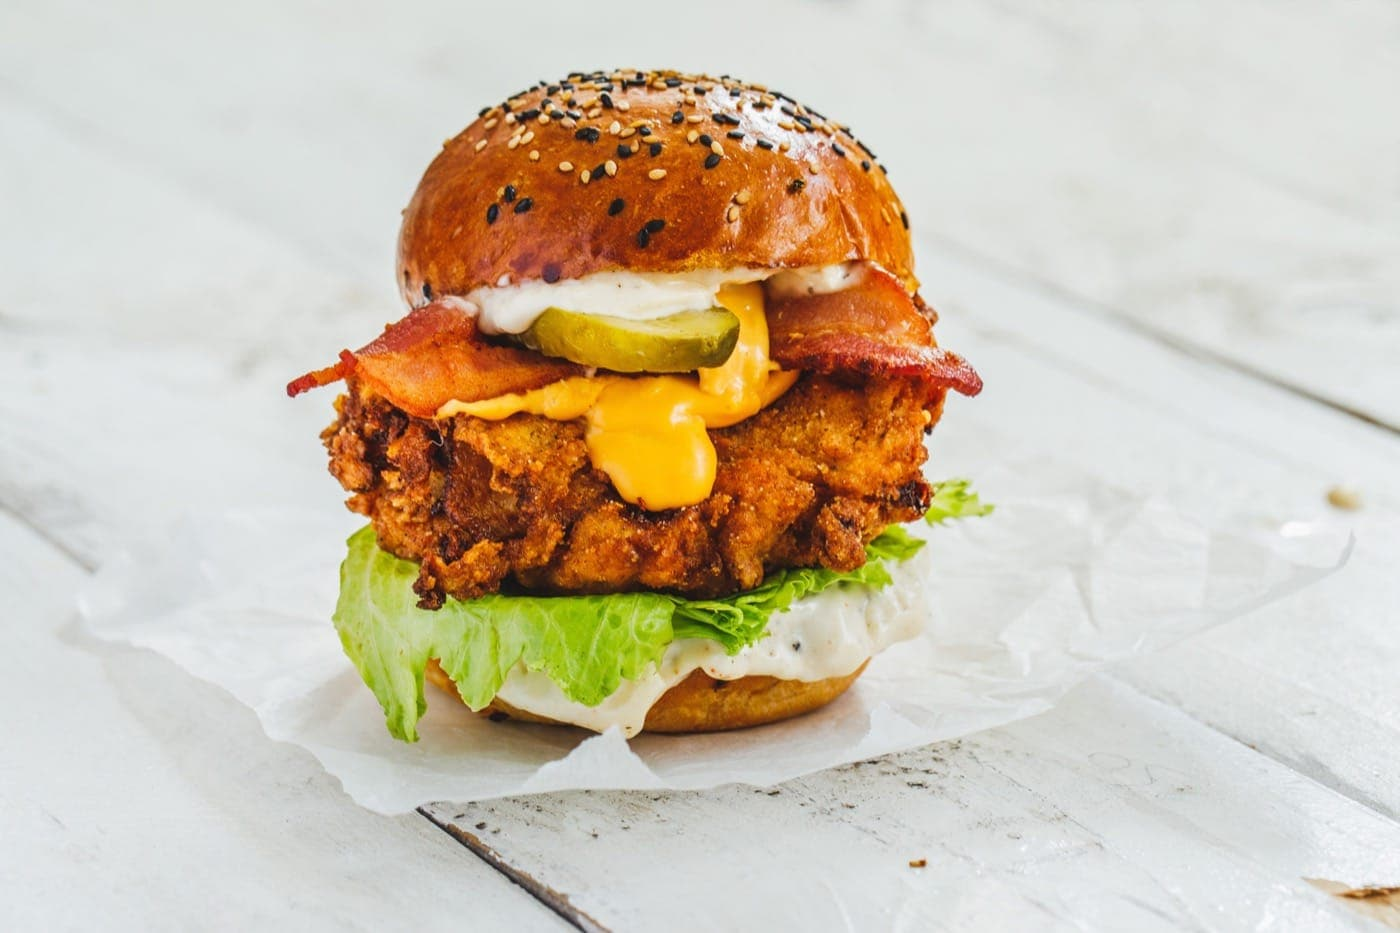 Feast-It-Yardbird-Chicken-street-food-fried-chicken-event-catering-unique-caterer-burgers-book-now-four